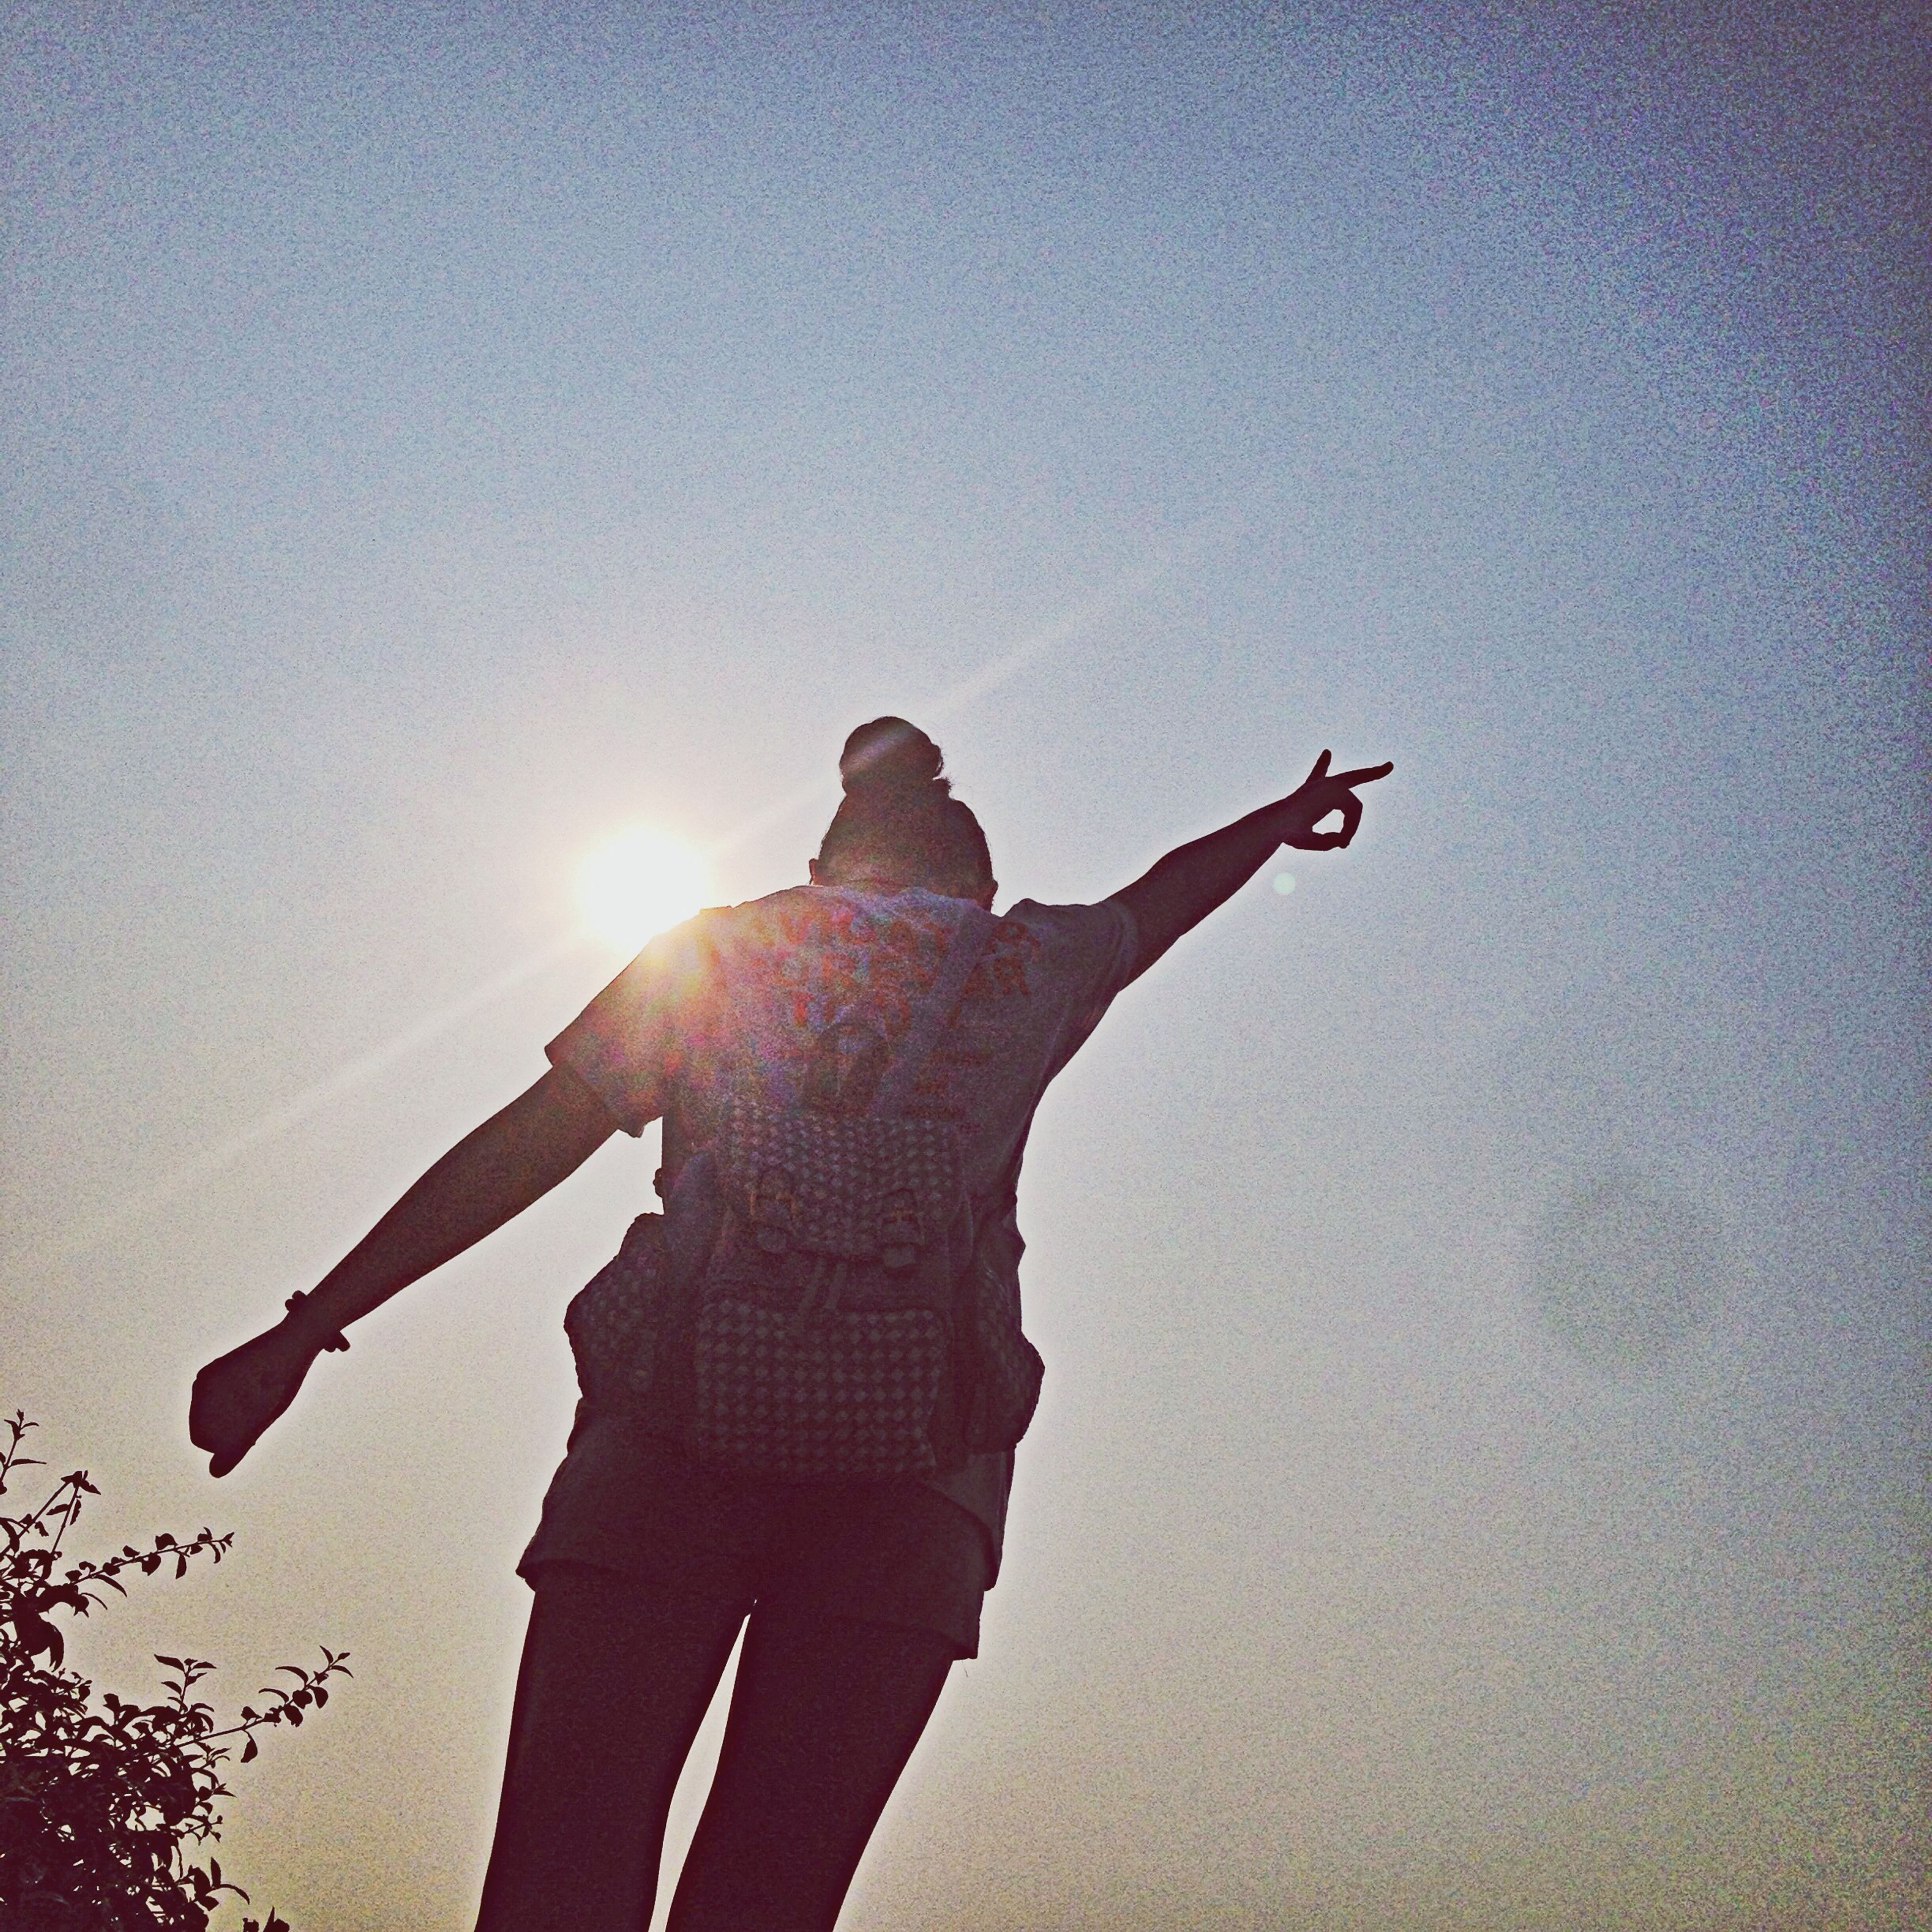 sun, silhouette, leisure activity, lifestyles, sunlight, sunbeam, low angle view, lens flare, holding, men, sky, standing, sunset, back lit, outdoors, copy space, skill, unrecognizable person